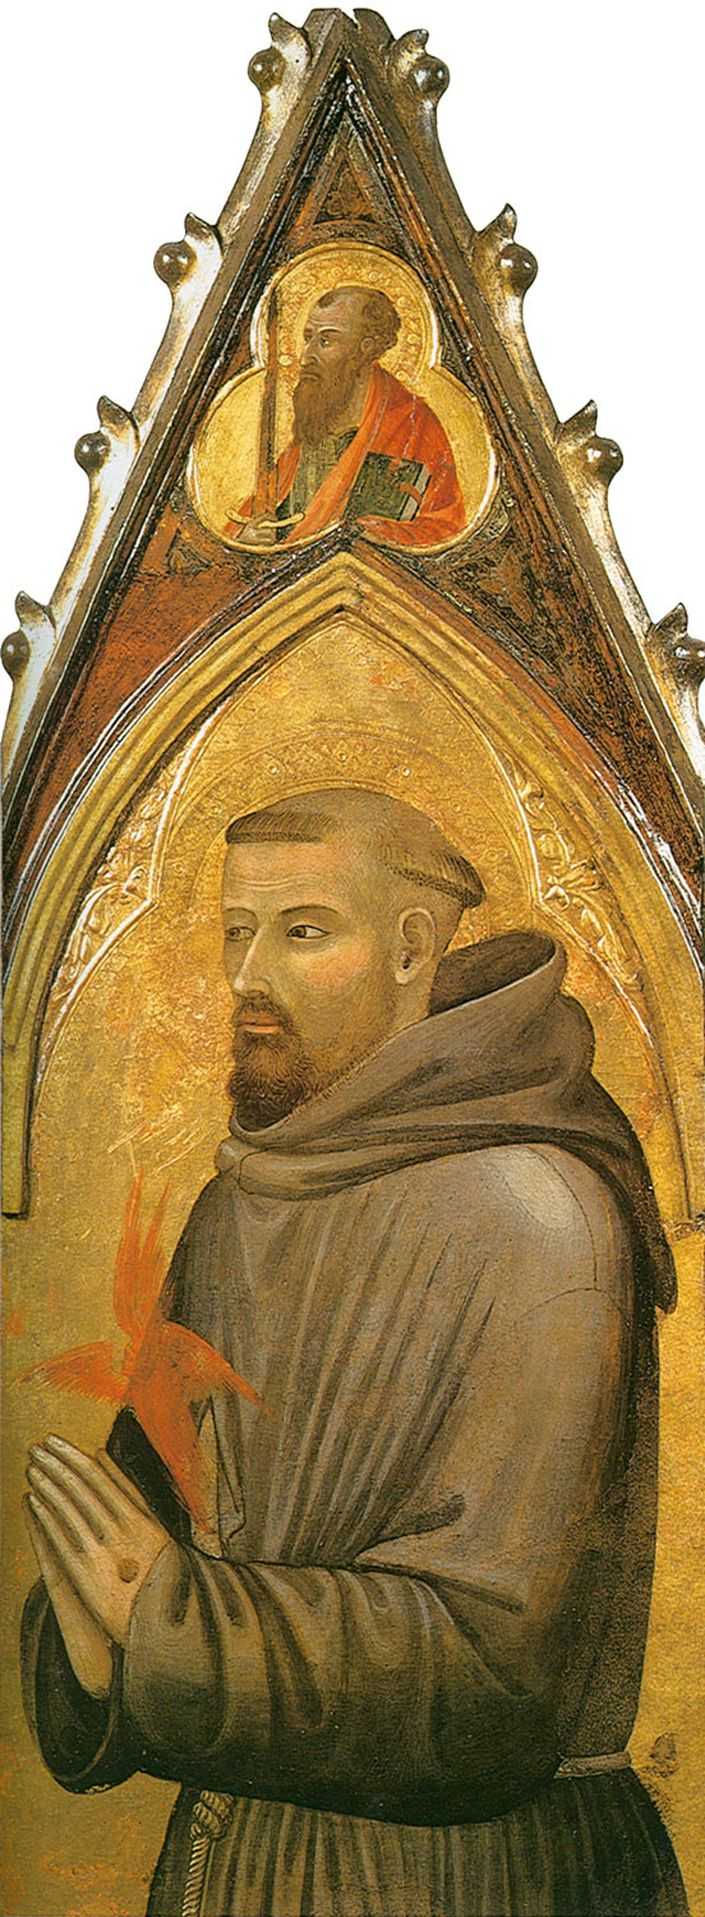 Ambrogio Lorenzetti (Siena, about 1290 - Siena, 1348) Saint Francis Gold and tempera on panel, 1330-1340 Museo dell�Opera del Duomo, Siena, Italy